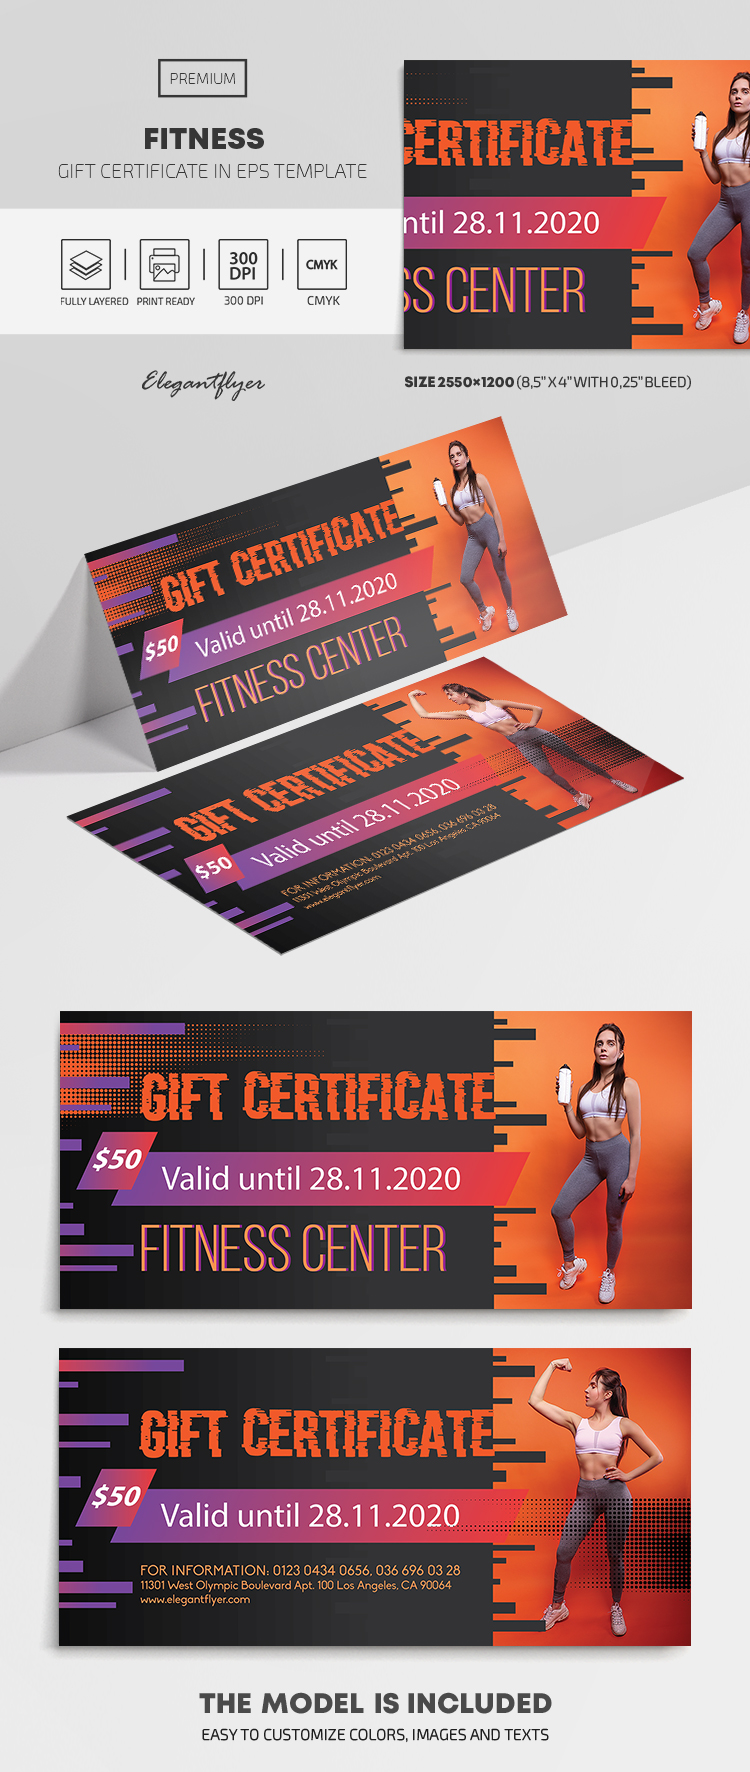 Fitness – Premium Gift Certificate Template in EPS